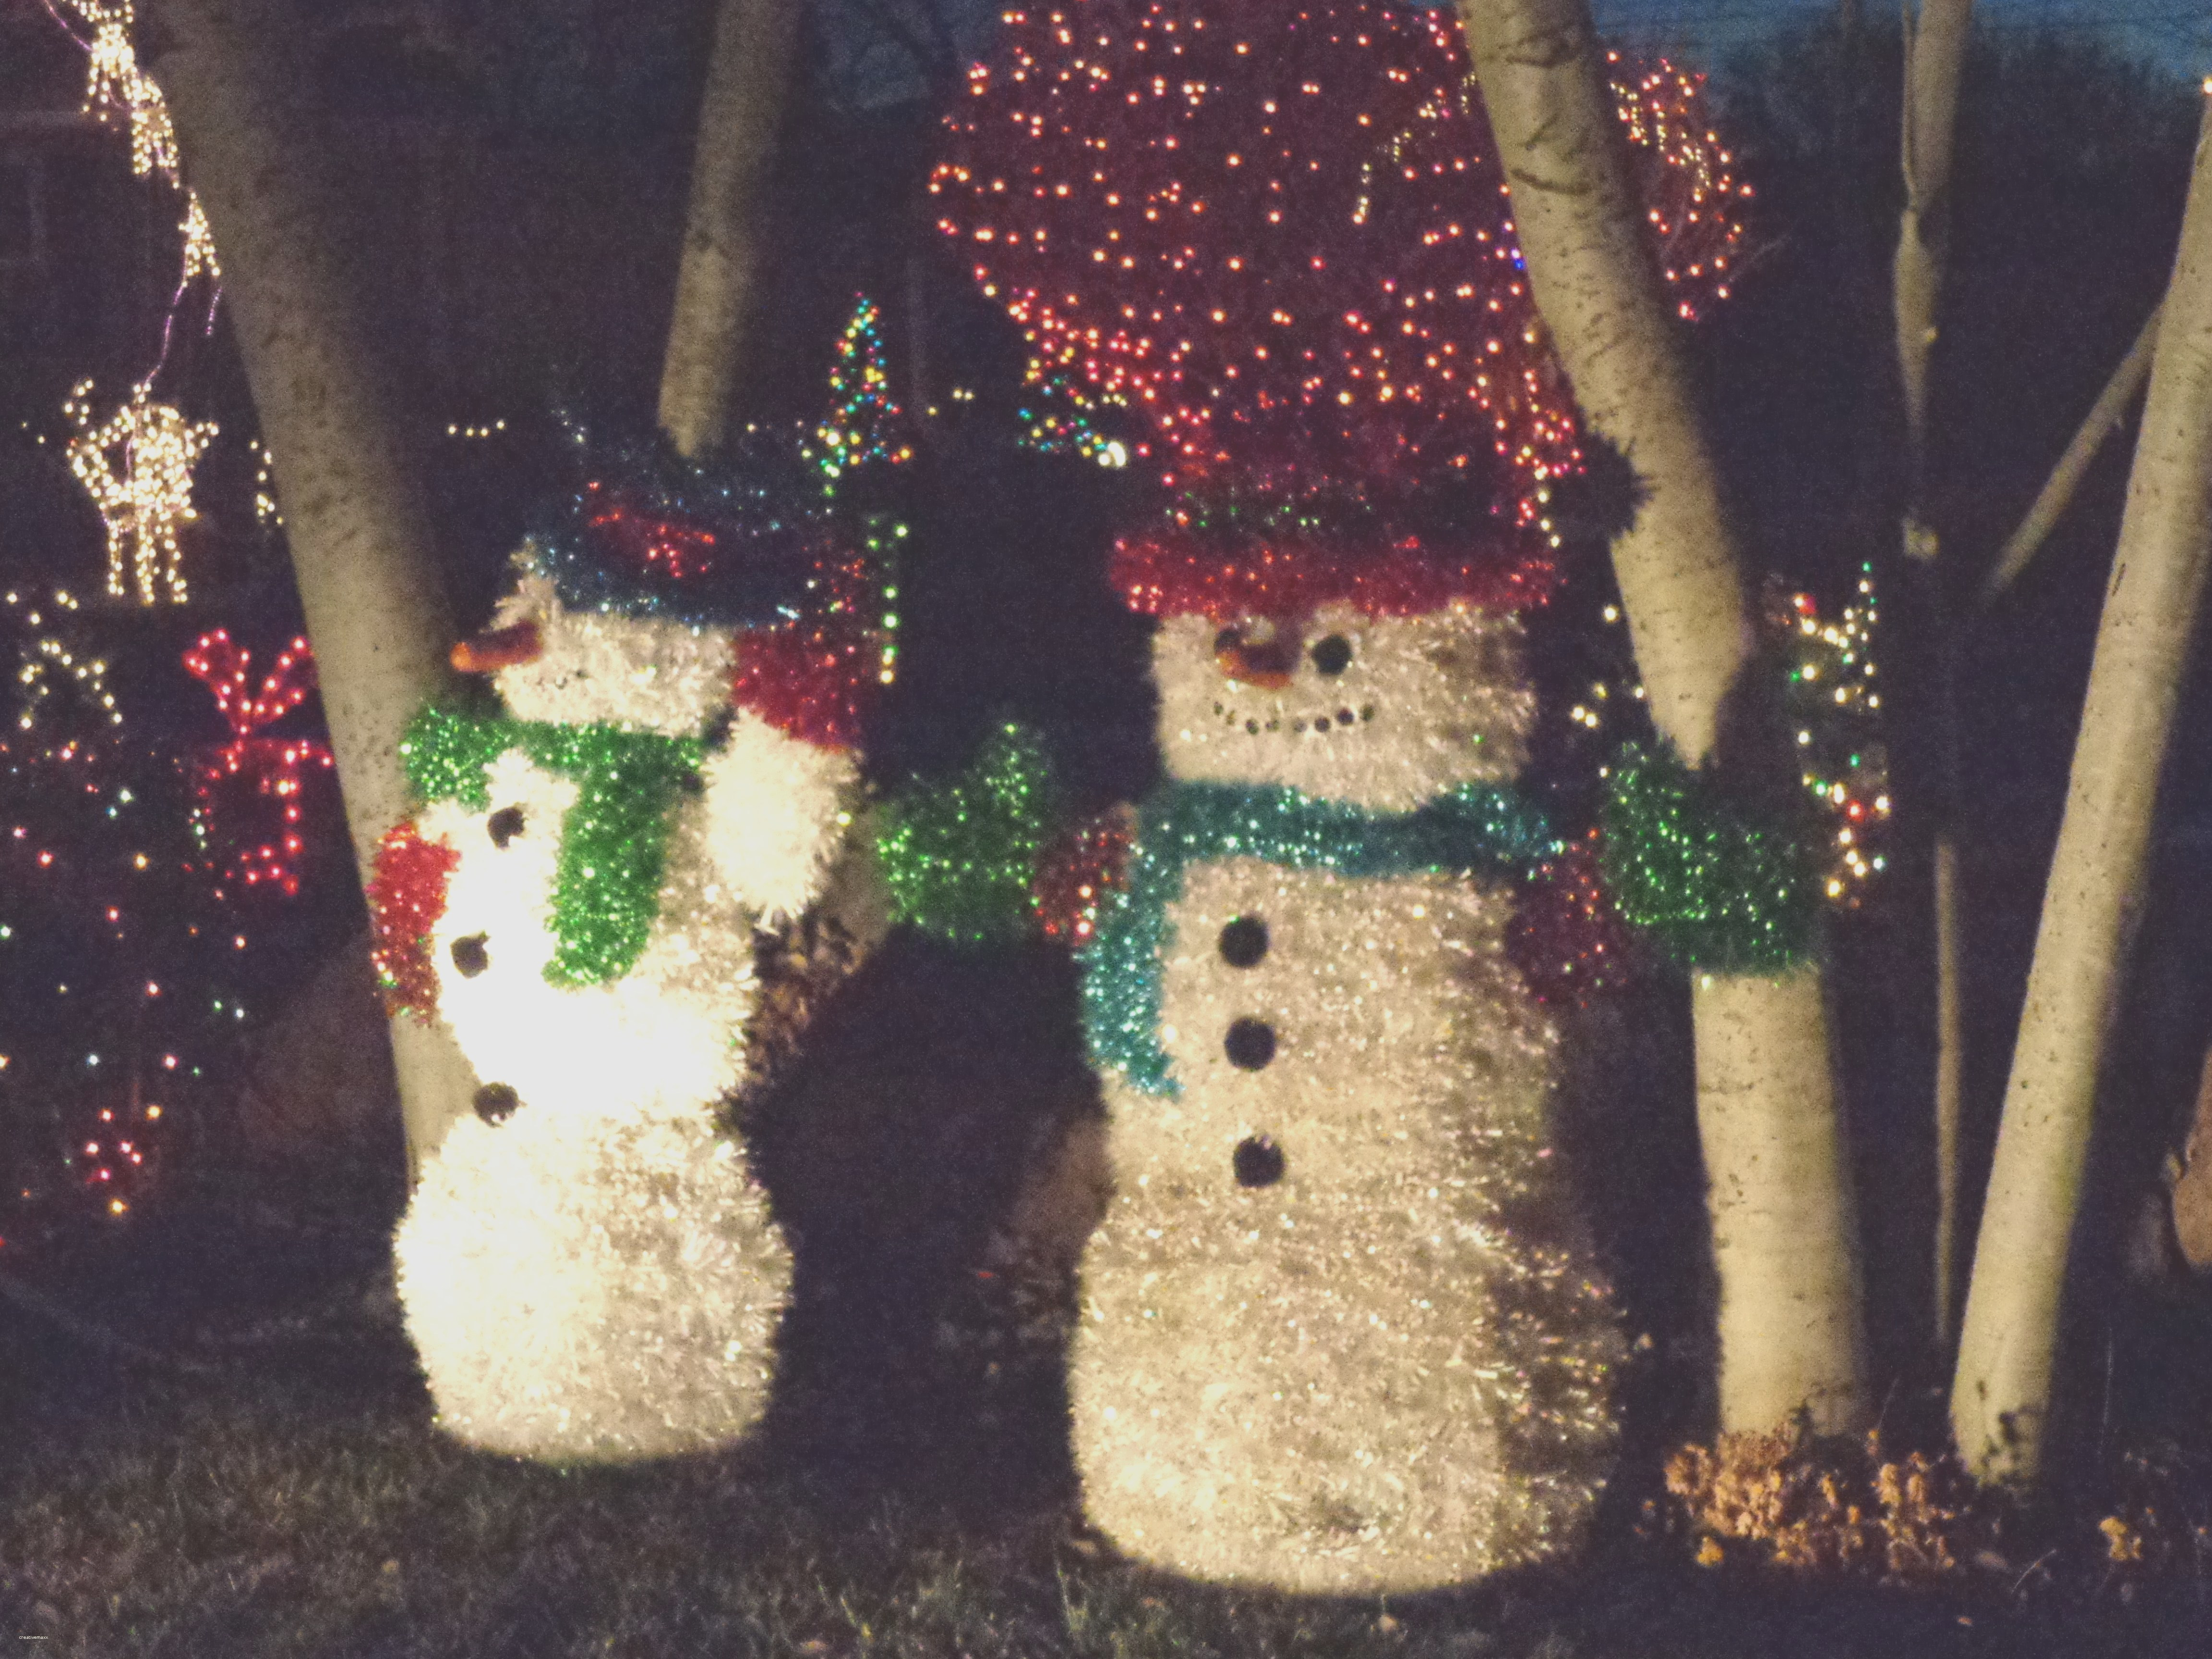 Luxury Awesome Christmas Front Yard Decorating Creative Maxx Ideas Snowman Christmas Tree Decorations Of Adorable 46 Pictures Snowman Christmas Tree Decorations